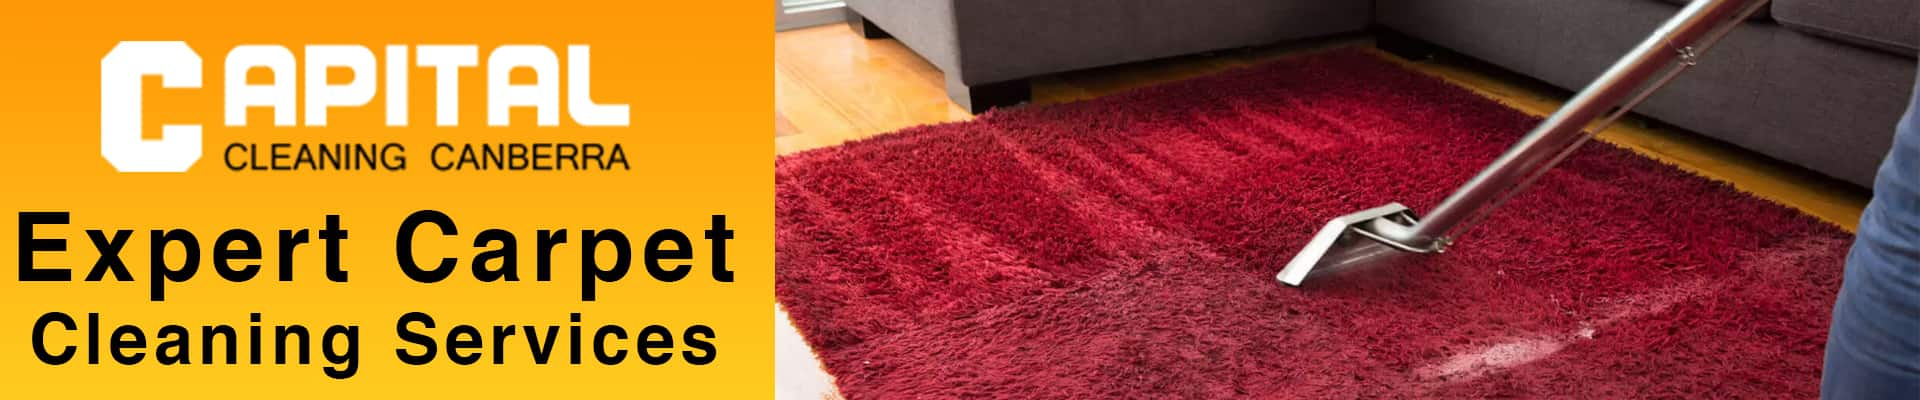 Expert Carpet Cleaning Services Oaks Estate